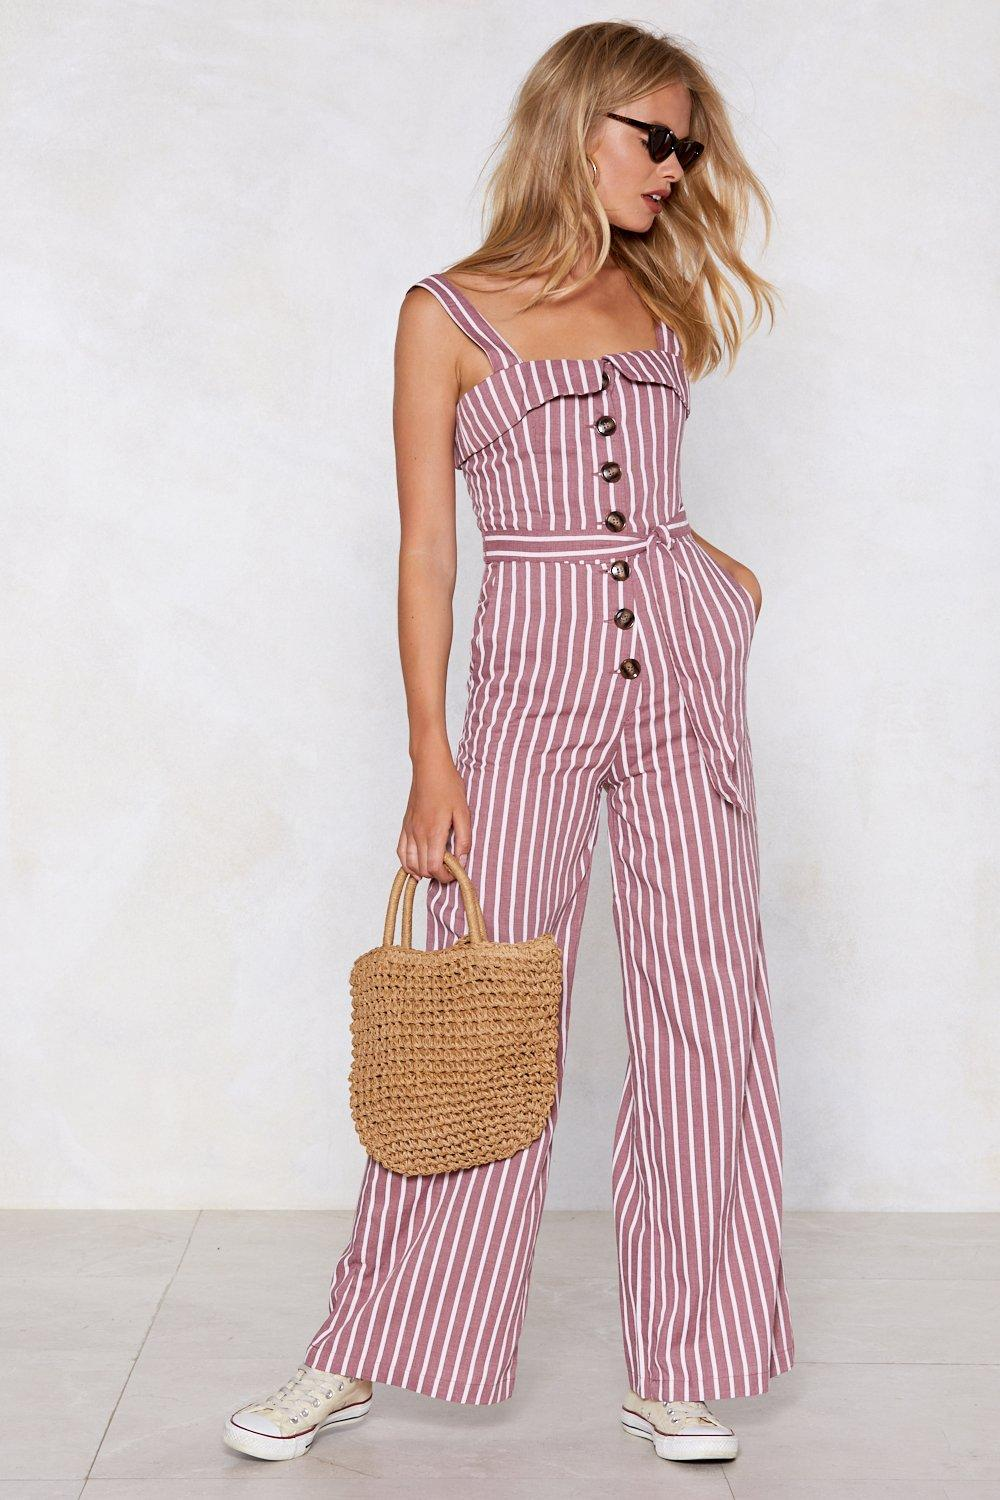 a23d456ceb6 Push My Buttons Striped Jumpsuit